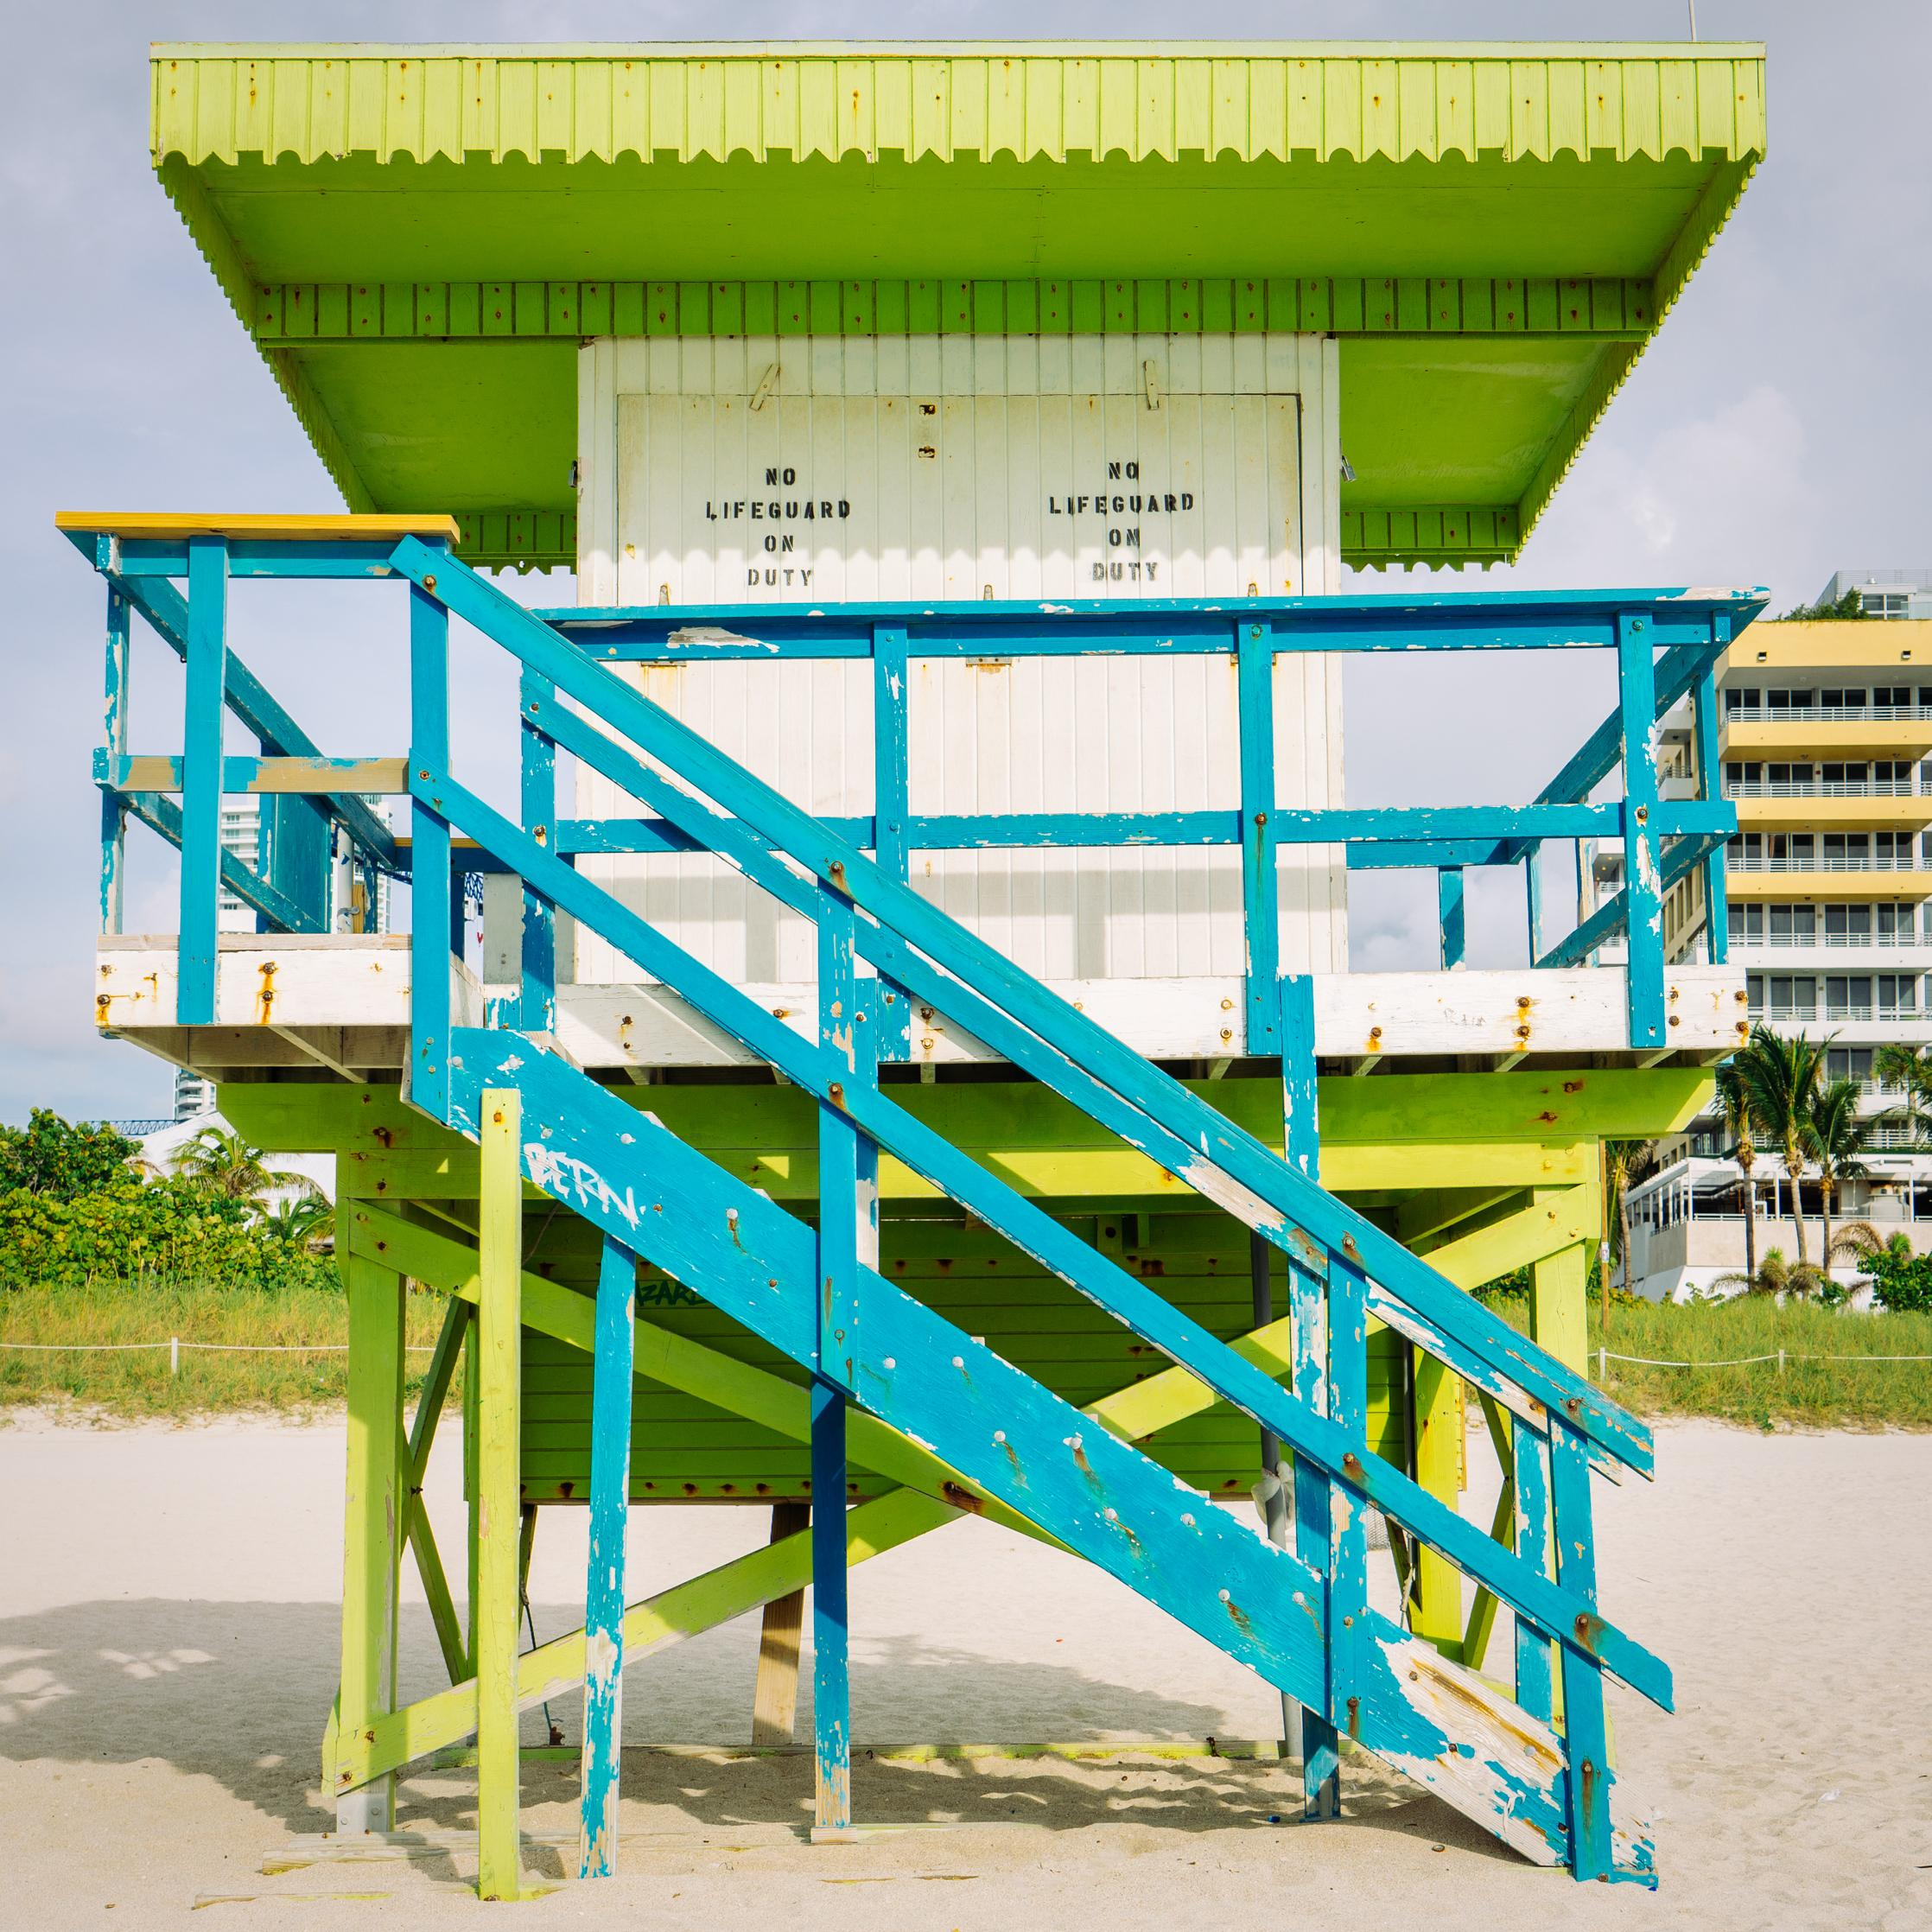 """1st Street Miami Lifeguard Stand - Front View,"" Contemporary Photograph - 20x20"